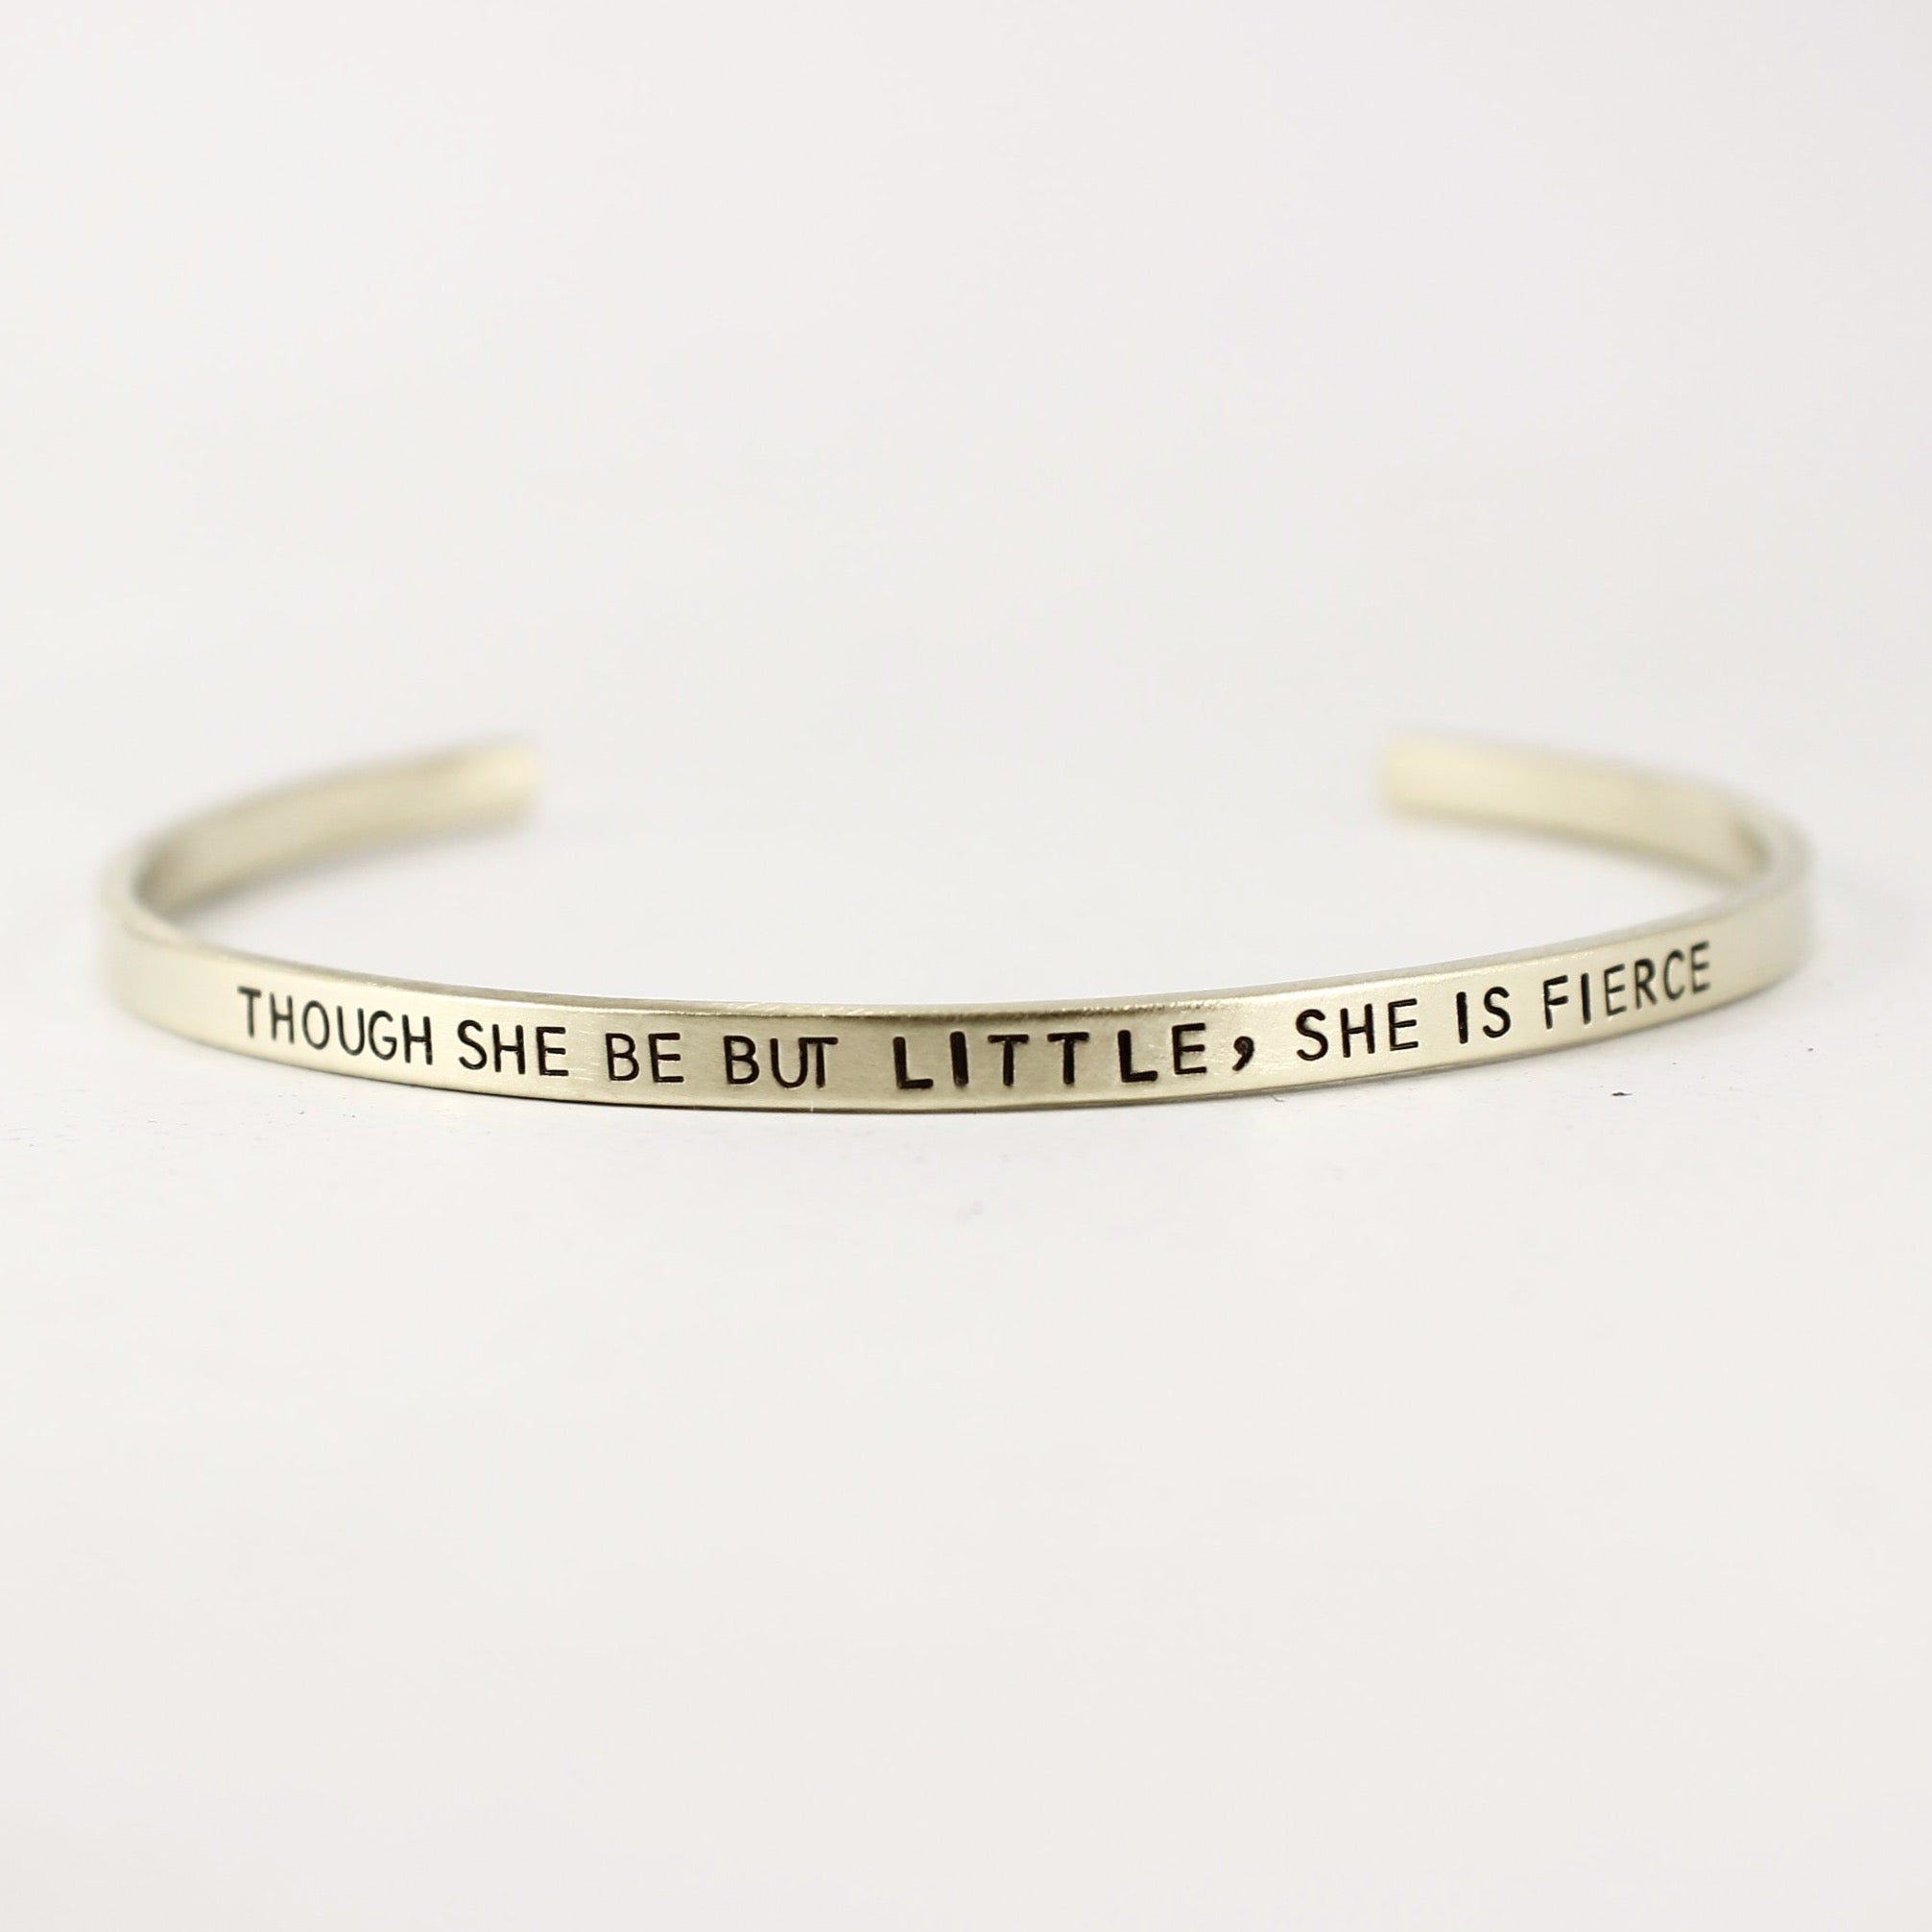 """Though she be but little, she is fierce"" Skinny Cuff Bracelet - Cuff Bracelets - Completely Hammered - Completely Wired"